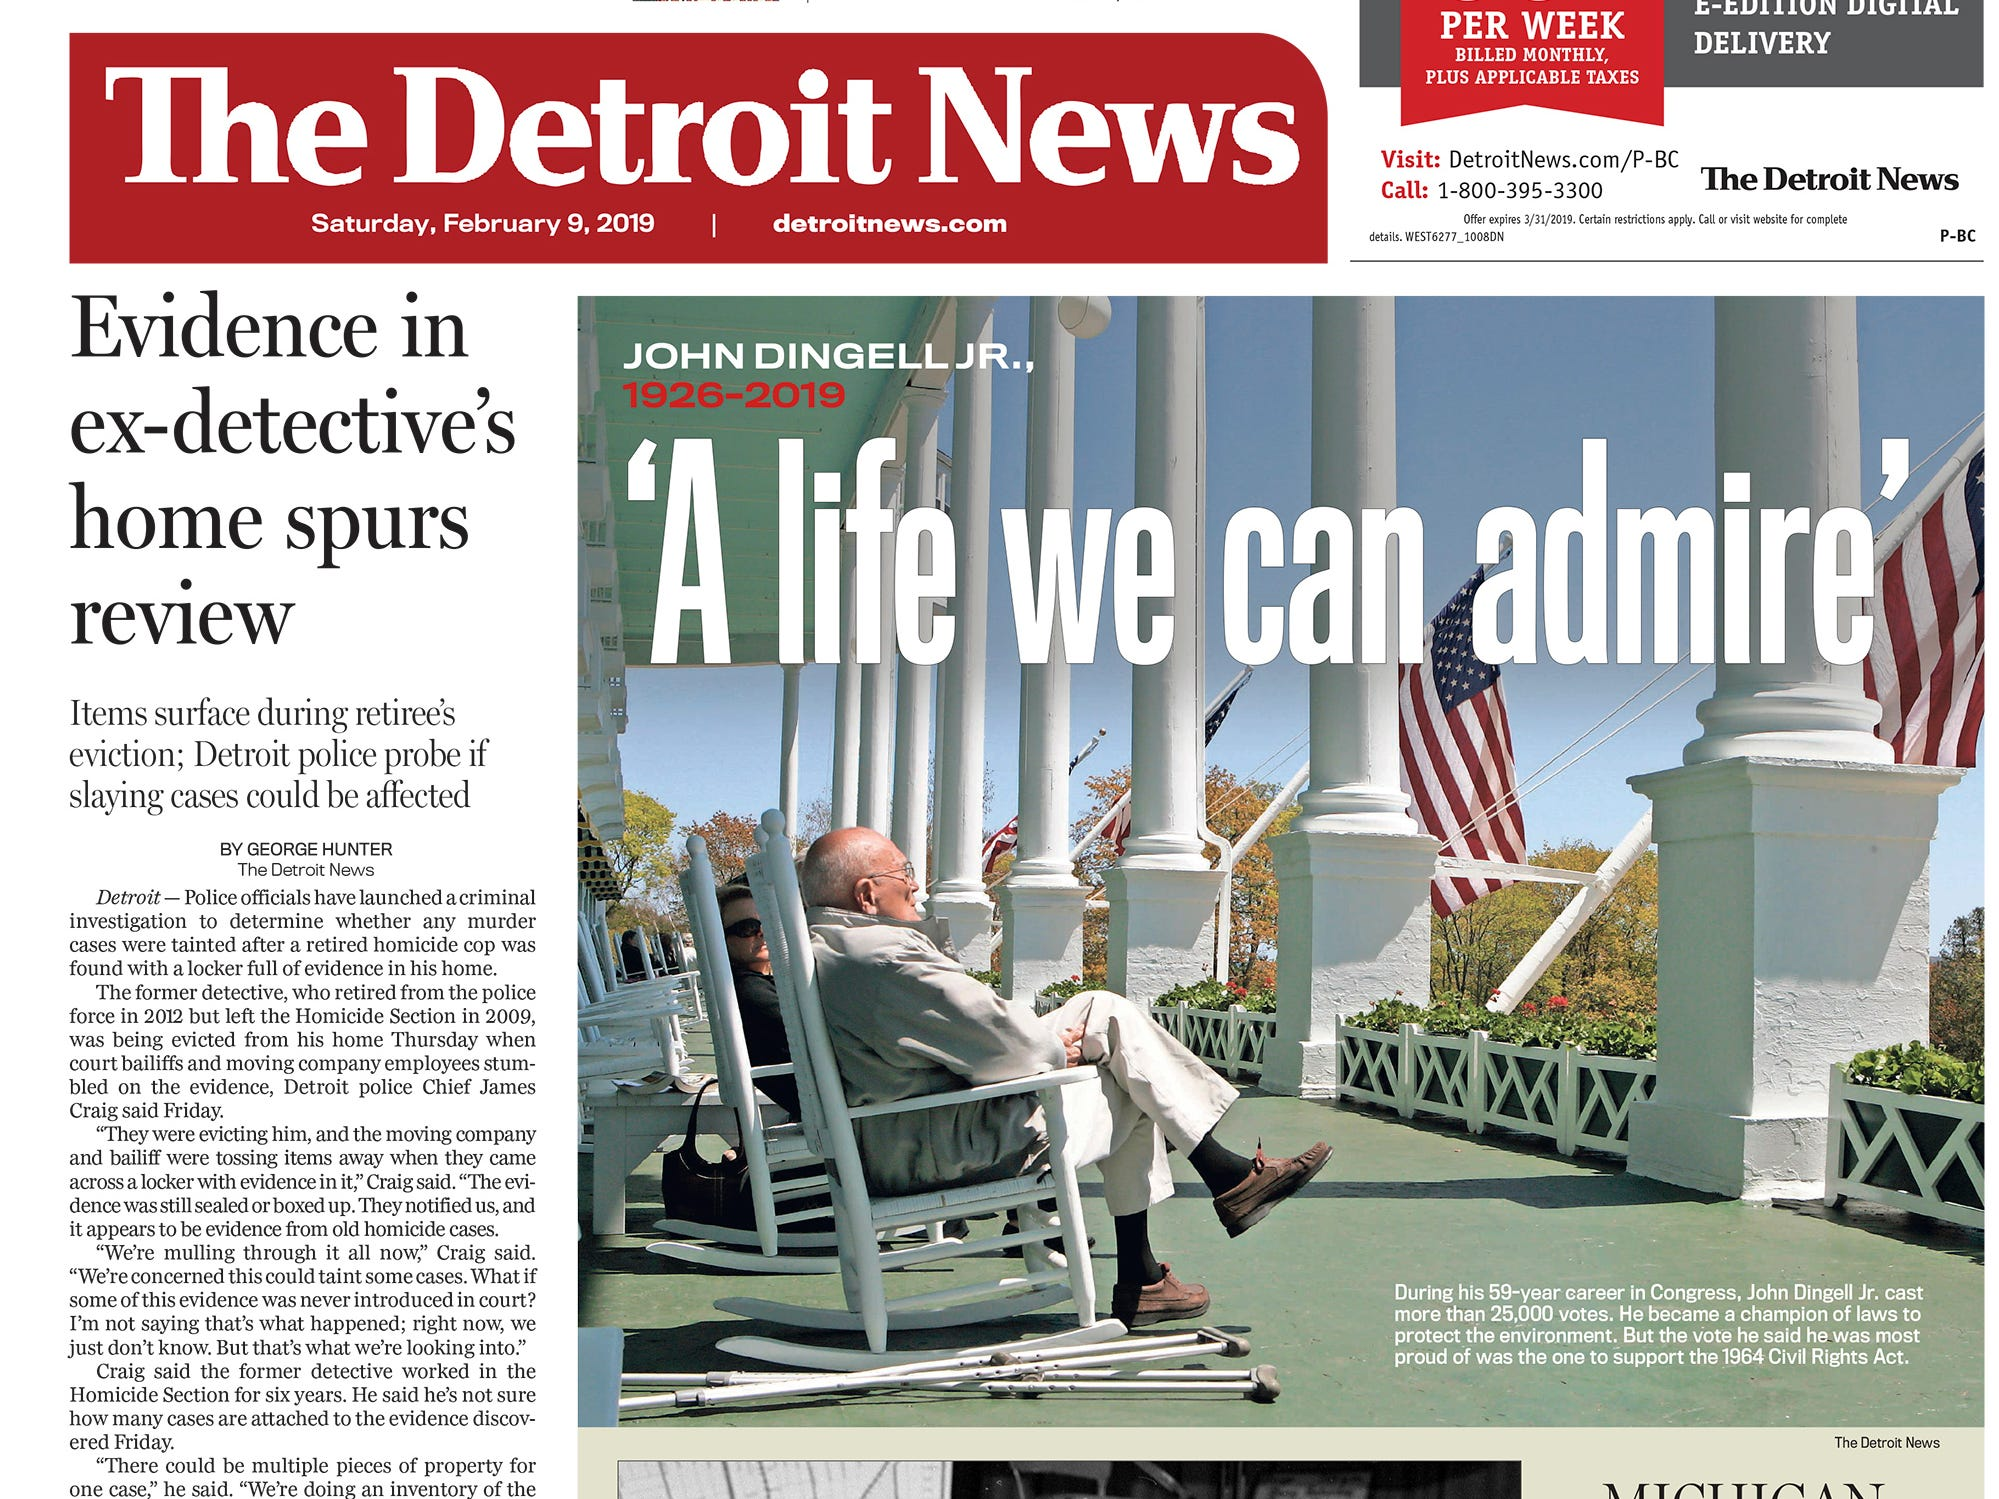 The front page of the Detroit News on Saturday, February 9, 2019.